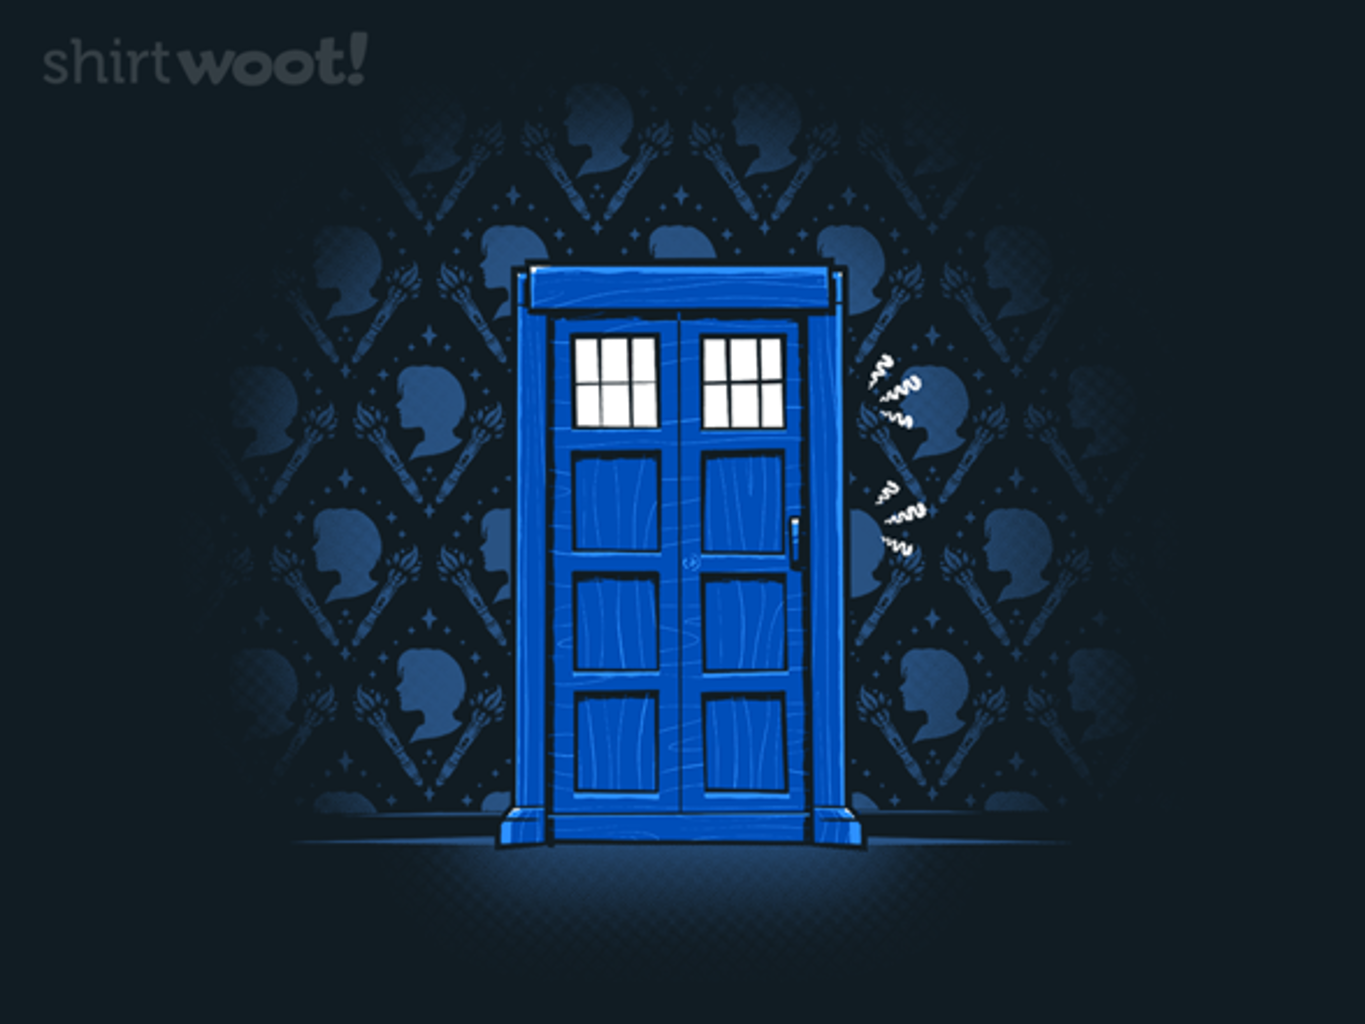 Woot!: Who's There? - $15.00 + Free shipping